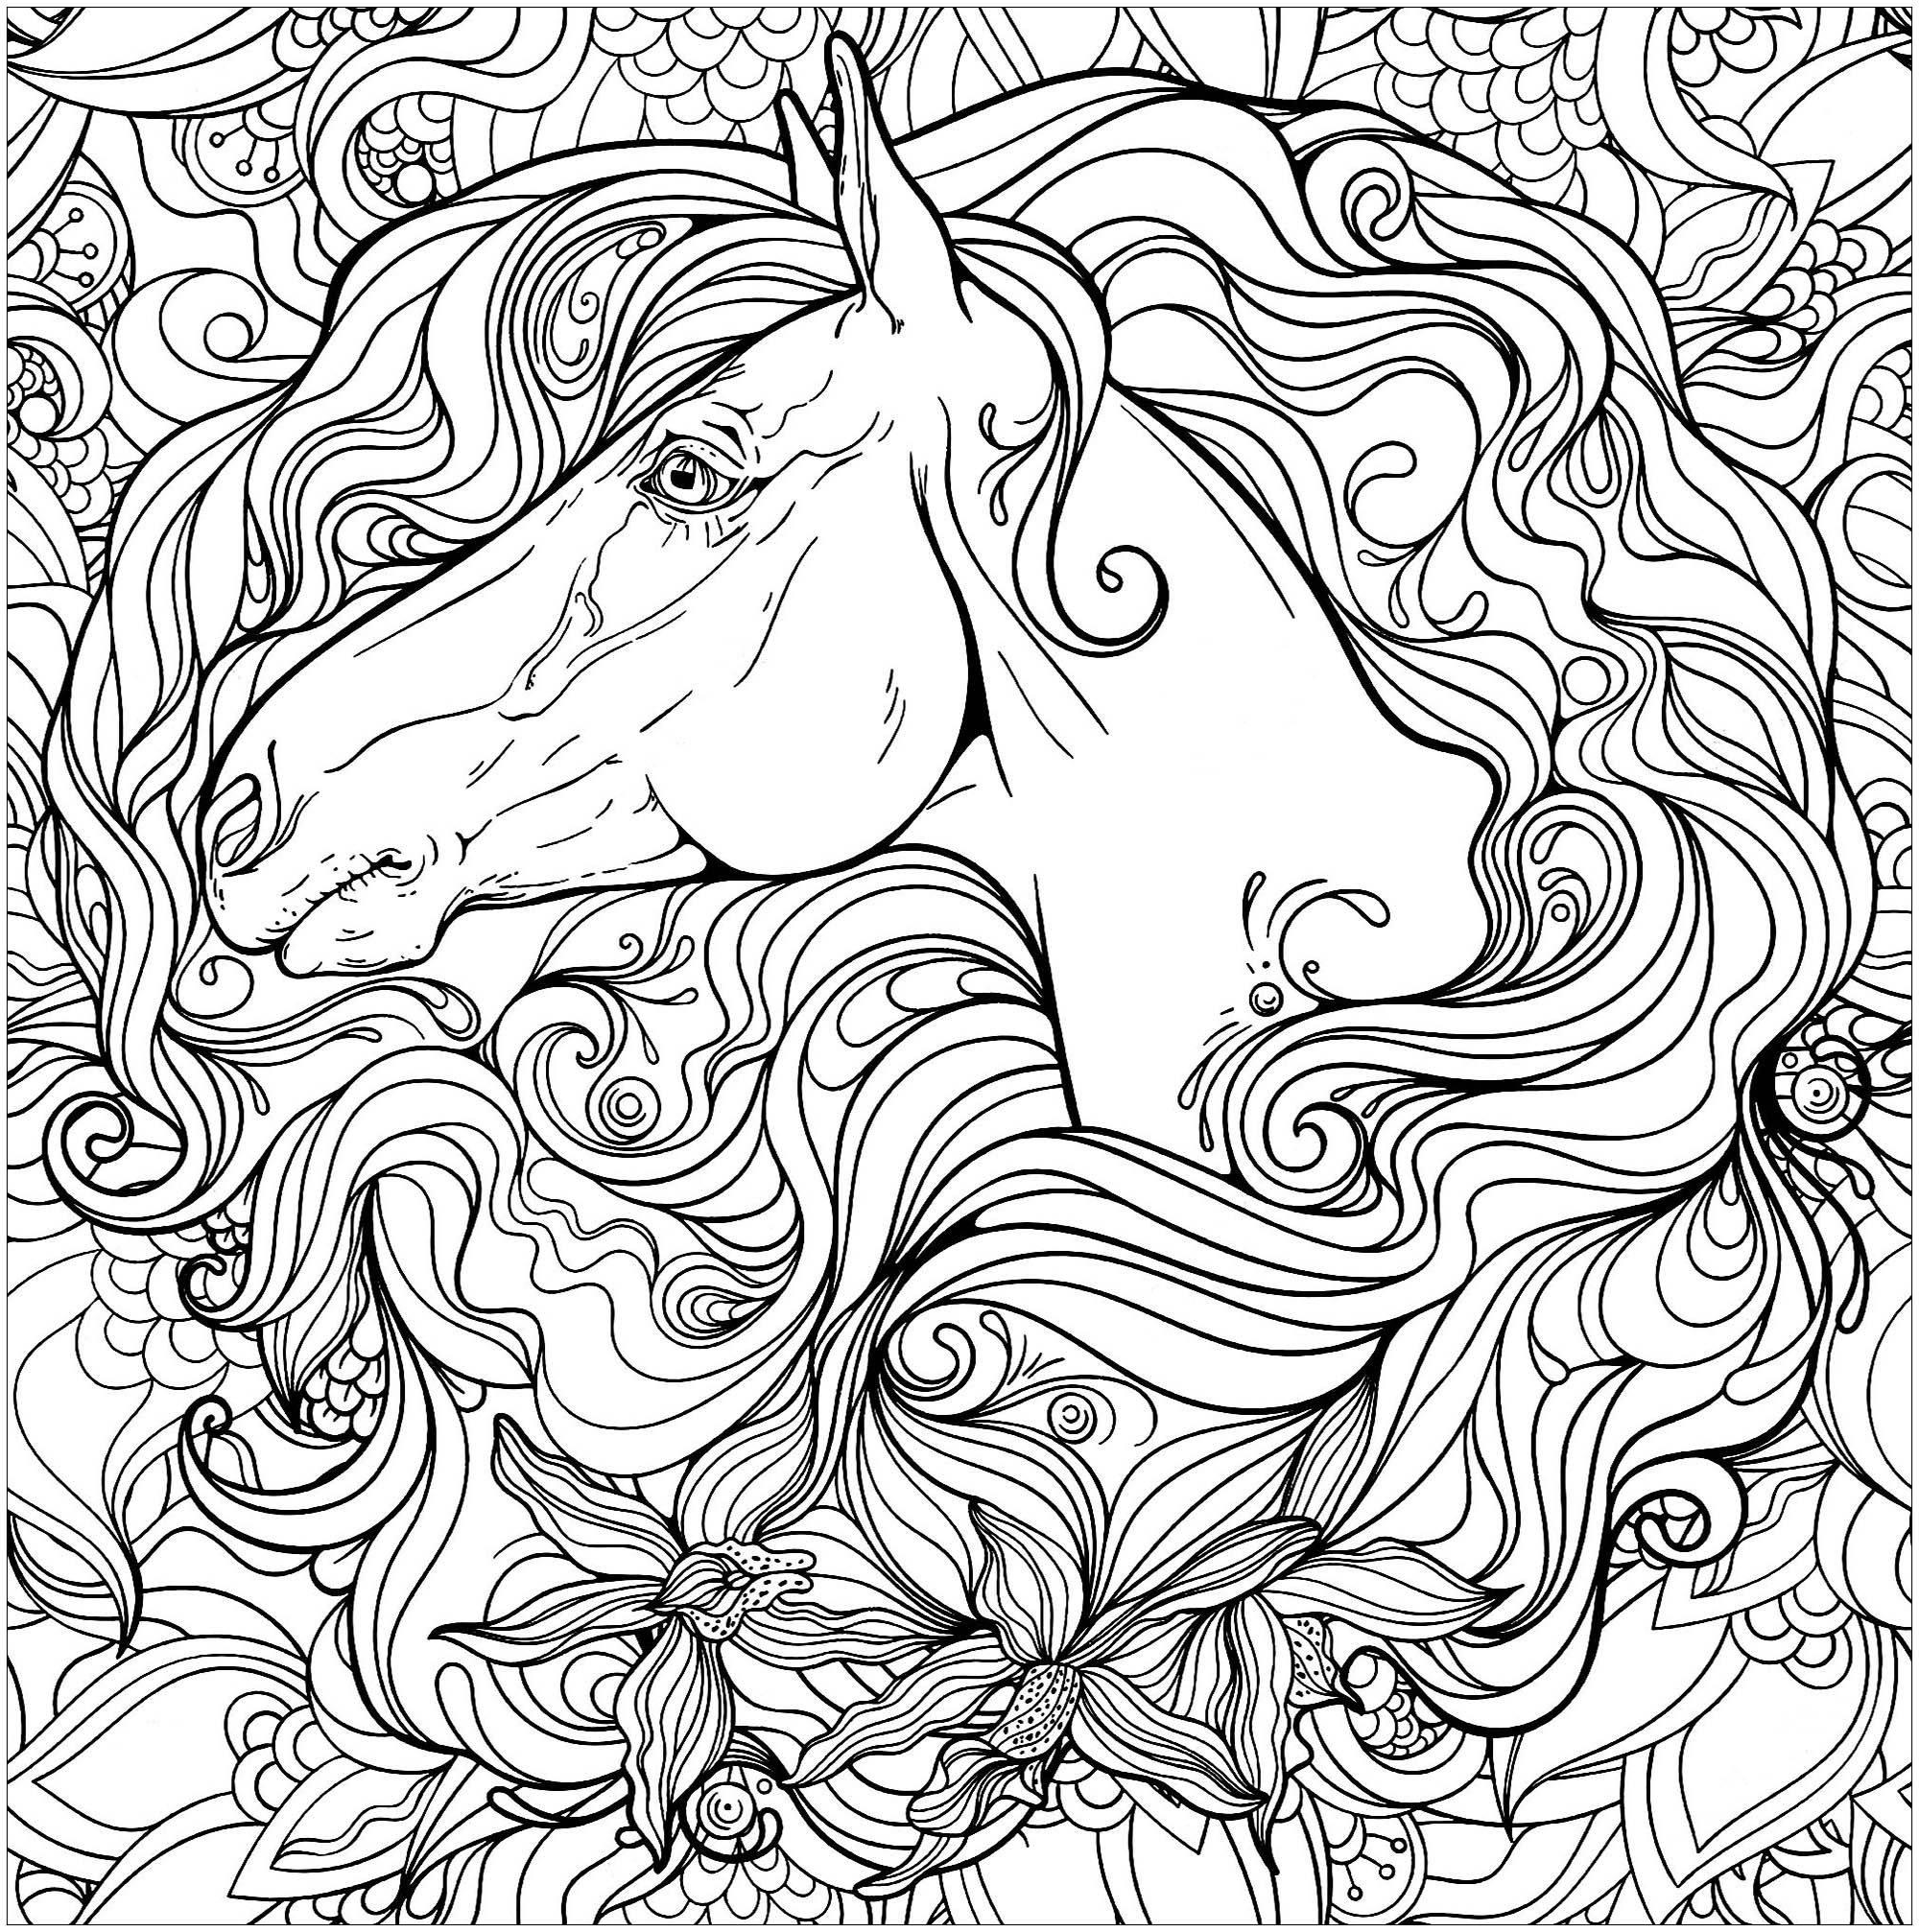 Horses Coloring Page To Print And Color